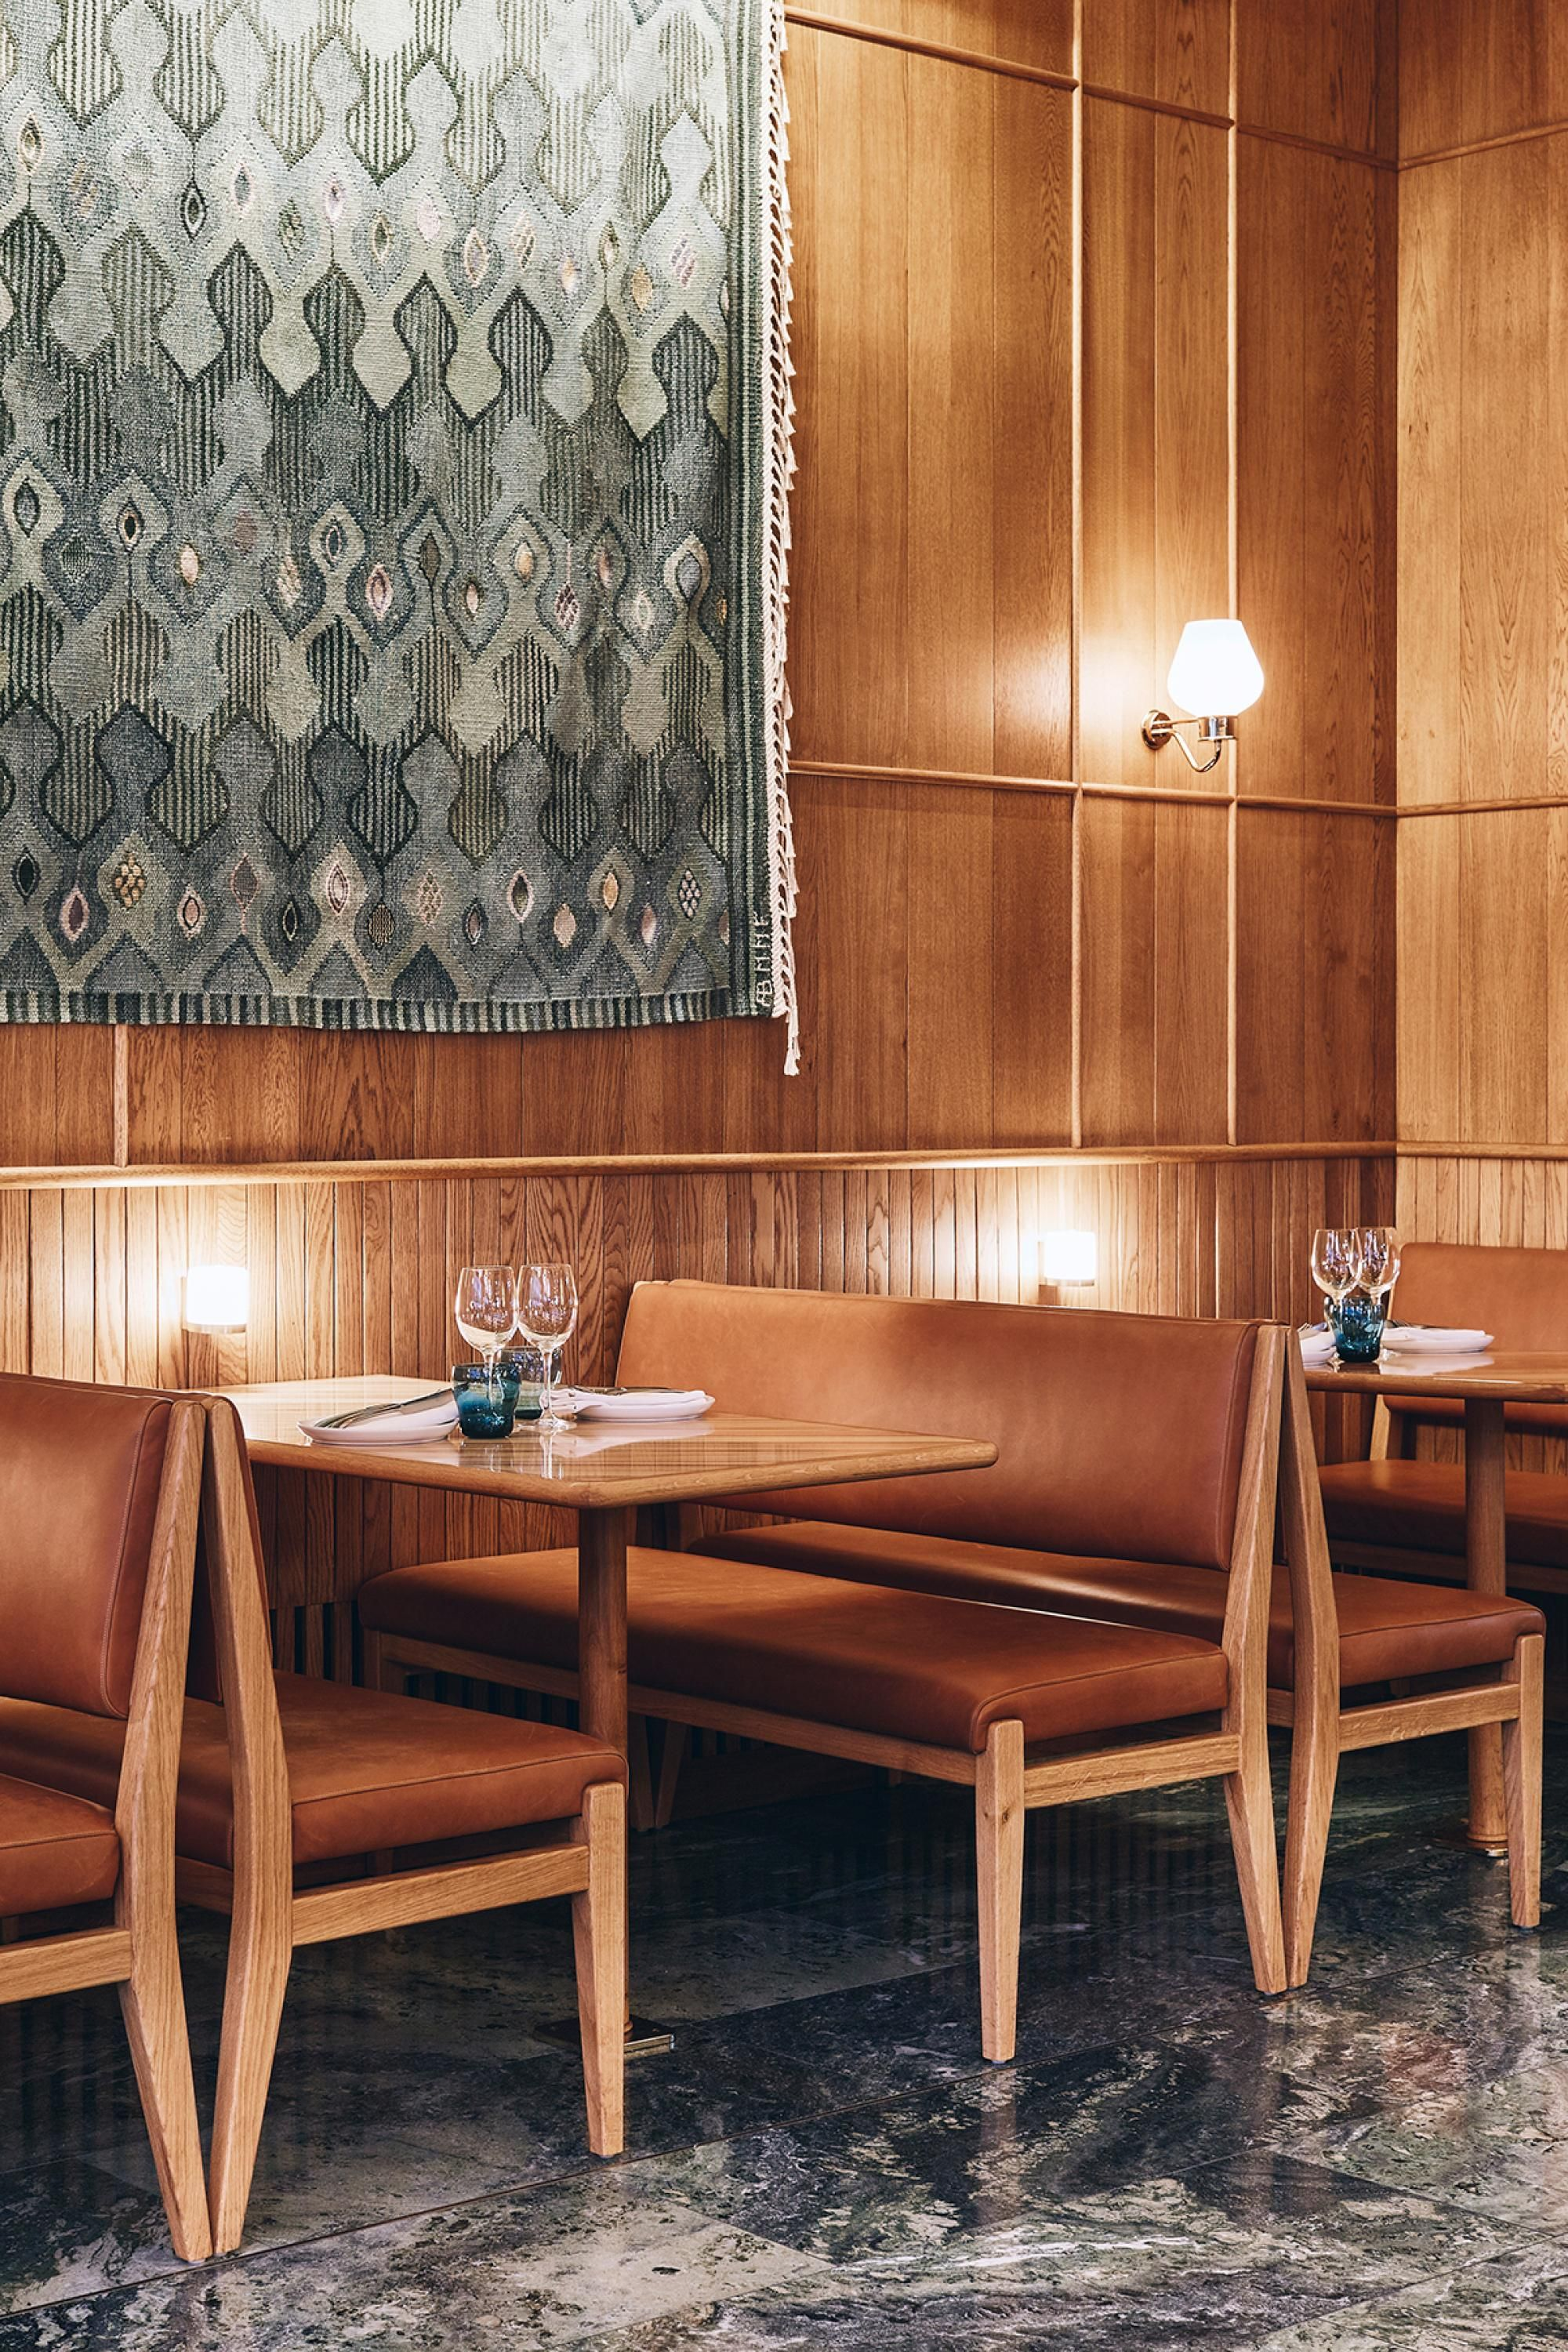 Aquavit Mbds Dining Room Design Timber Panelling Private Dining Room